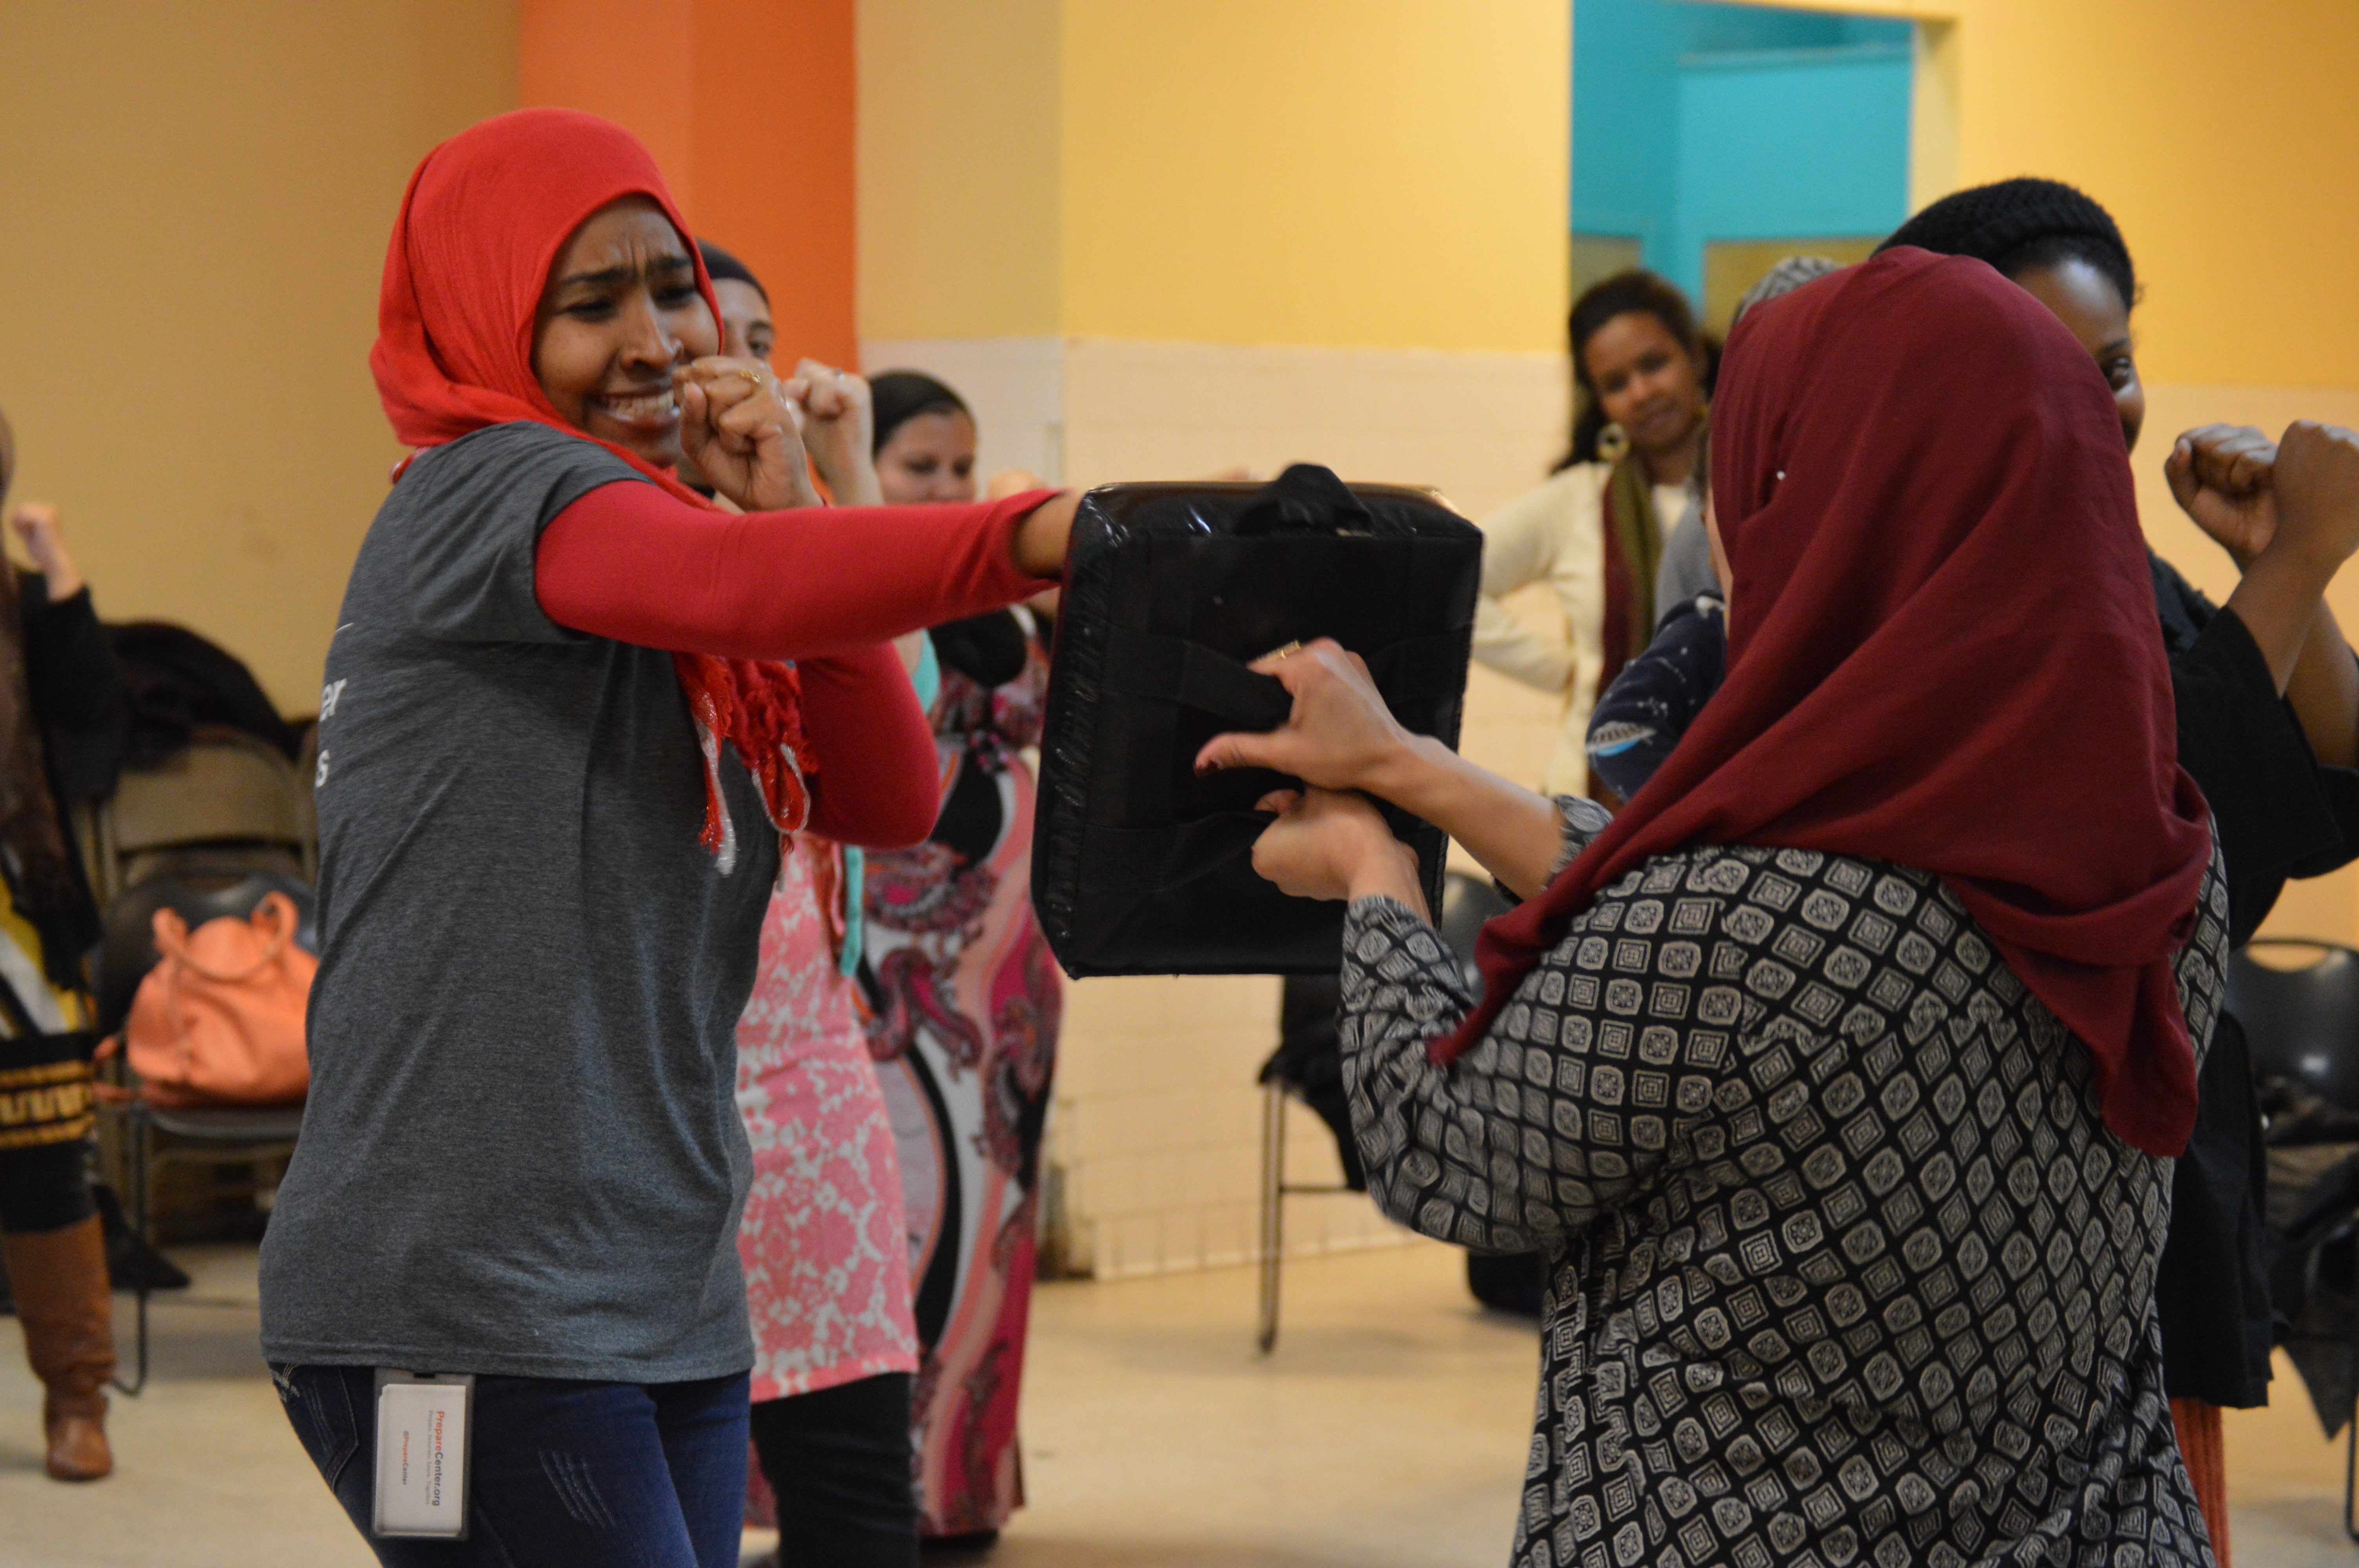 Local Muslim women fight fear with self-defense lesson